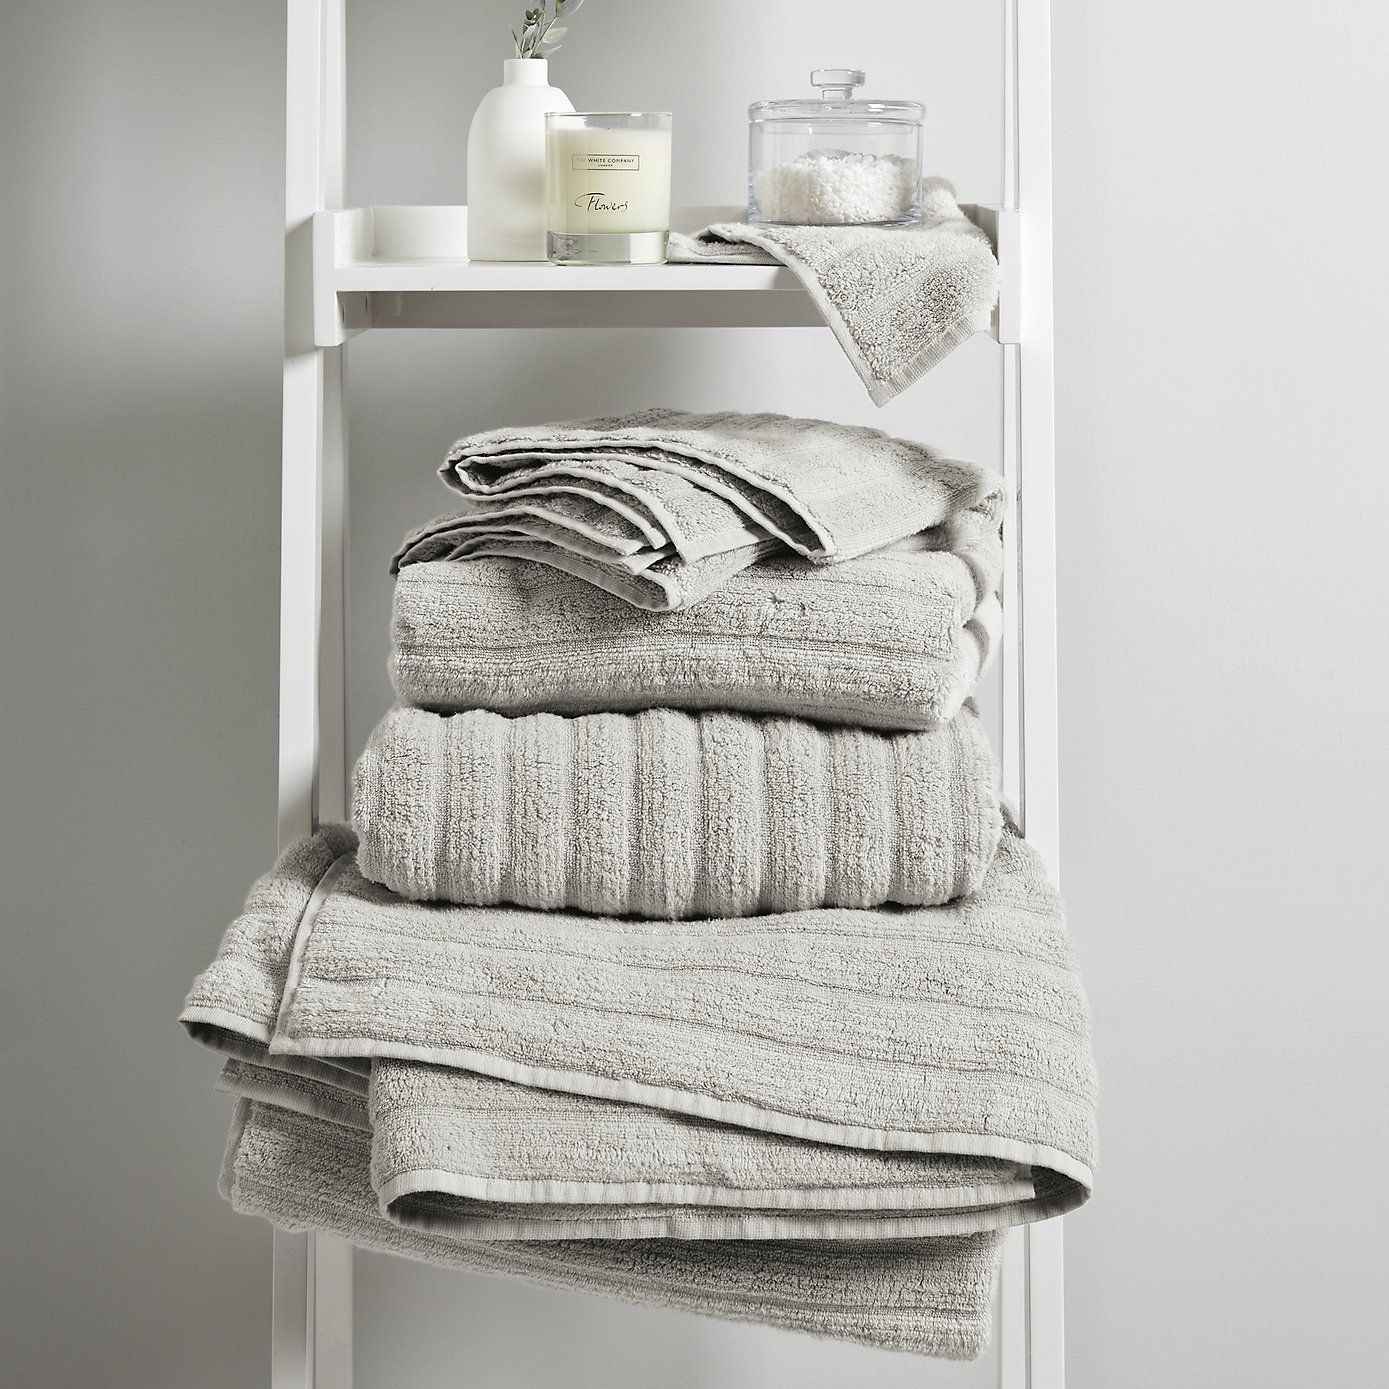 Hydrocotton Bath Towels Interesting Hydrocotton Towels  White Company Towels And Bungalow Inspiration